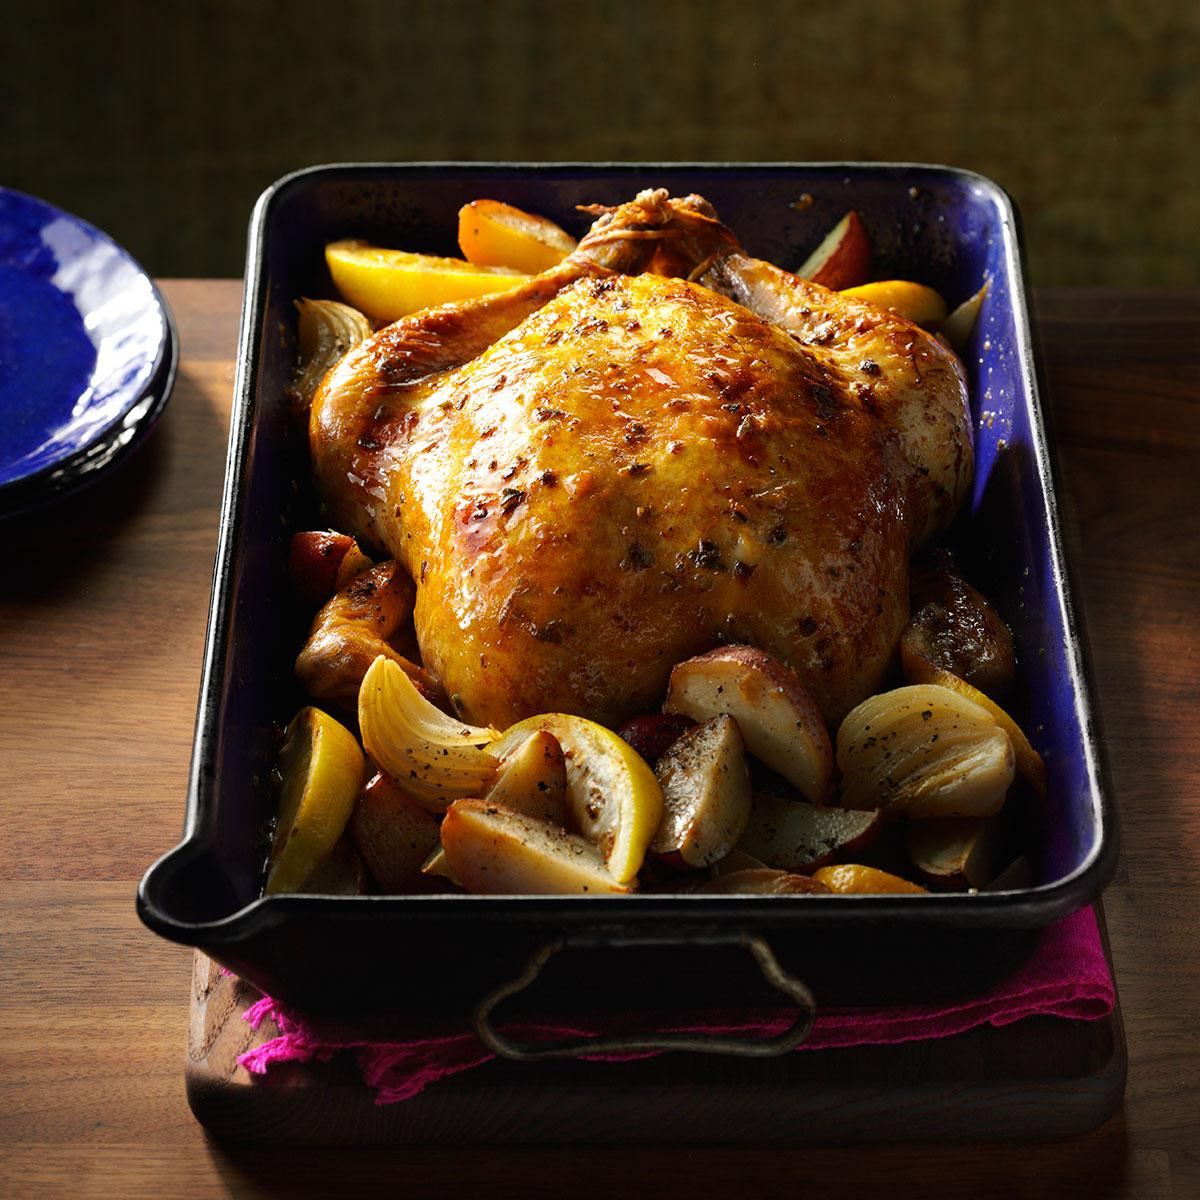 Lemon Amp Sage Roasted Chicken Recipe Taste Of Home